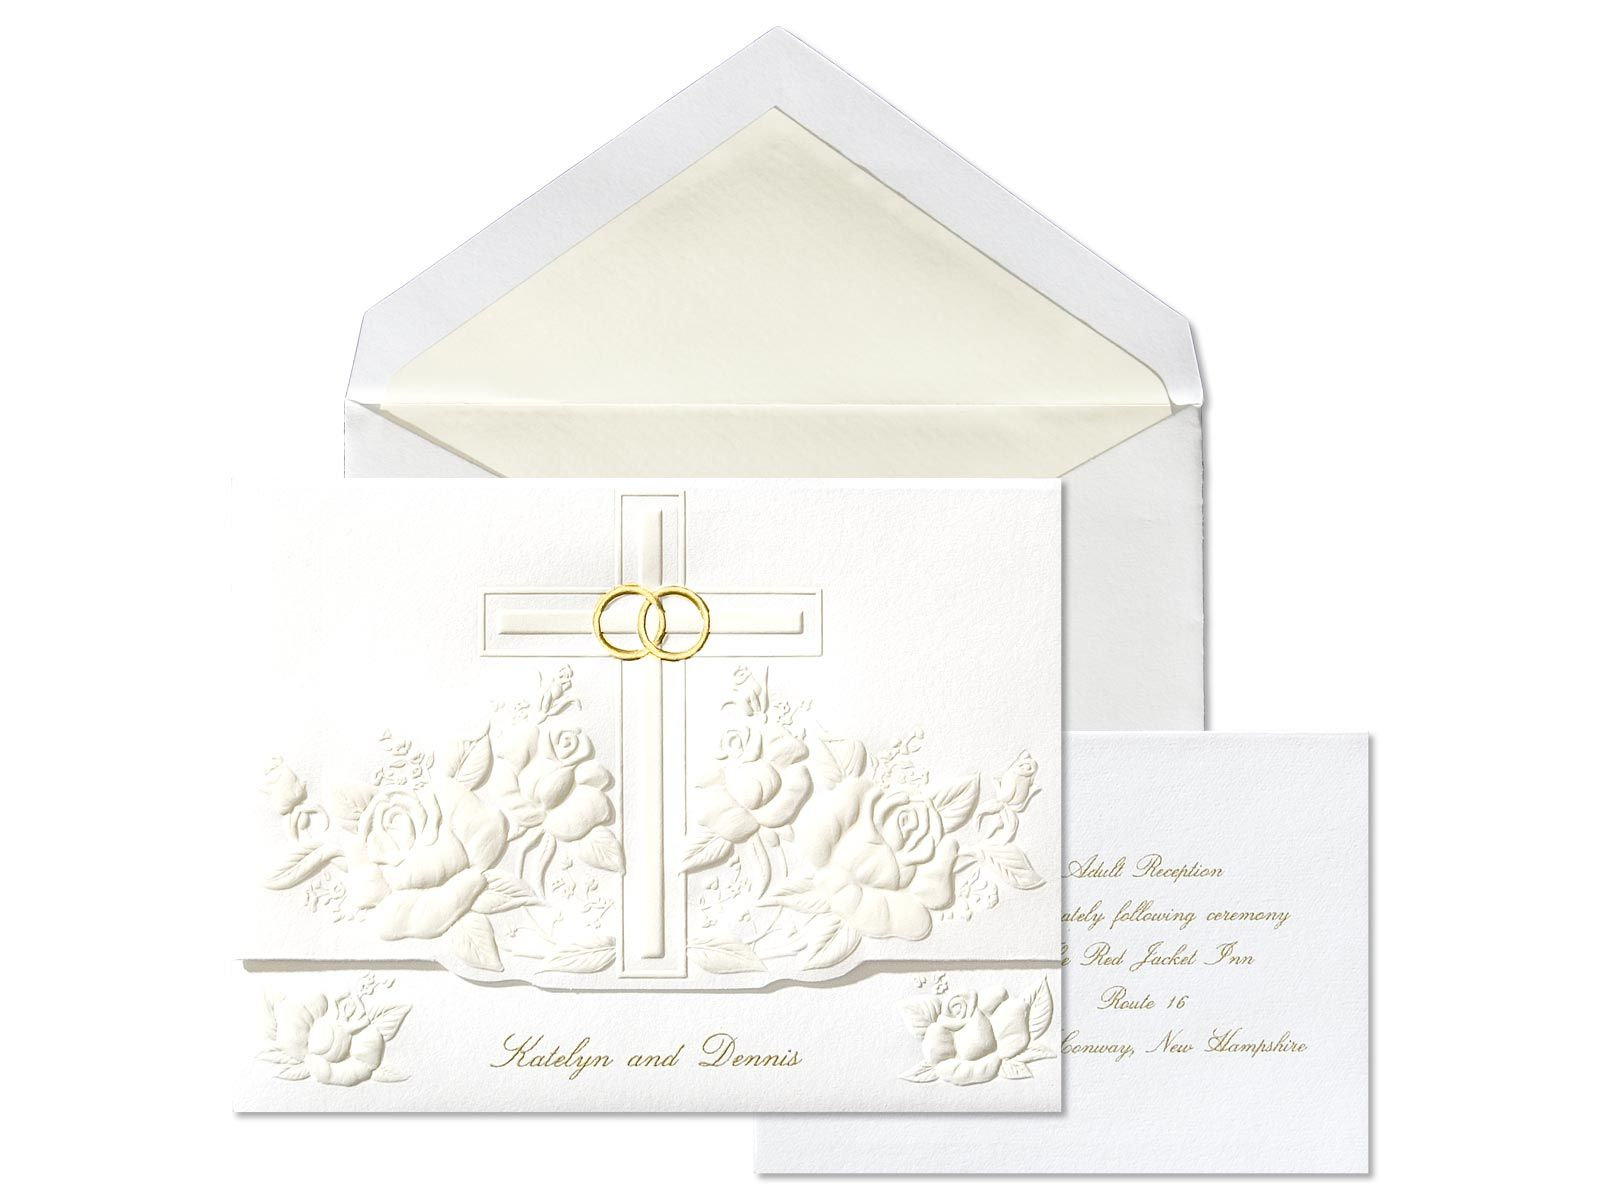 Unique Christian Wedding Invitations 12 Ideas with Christian